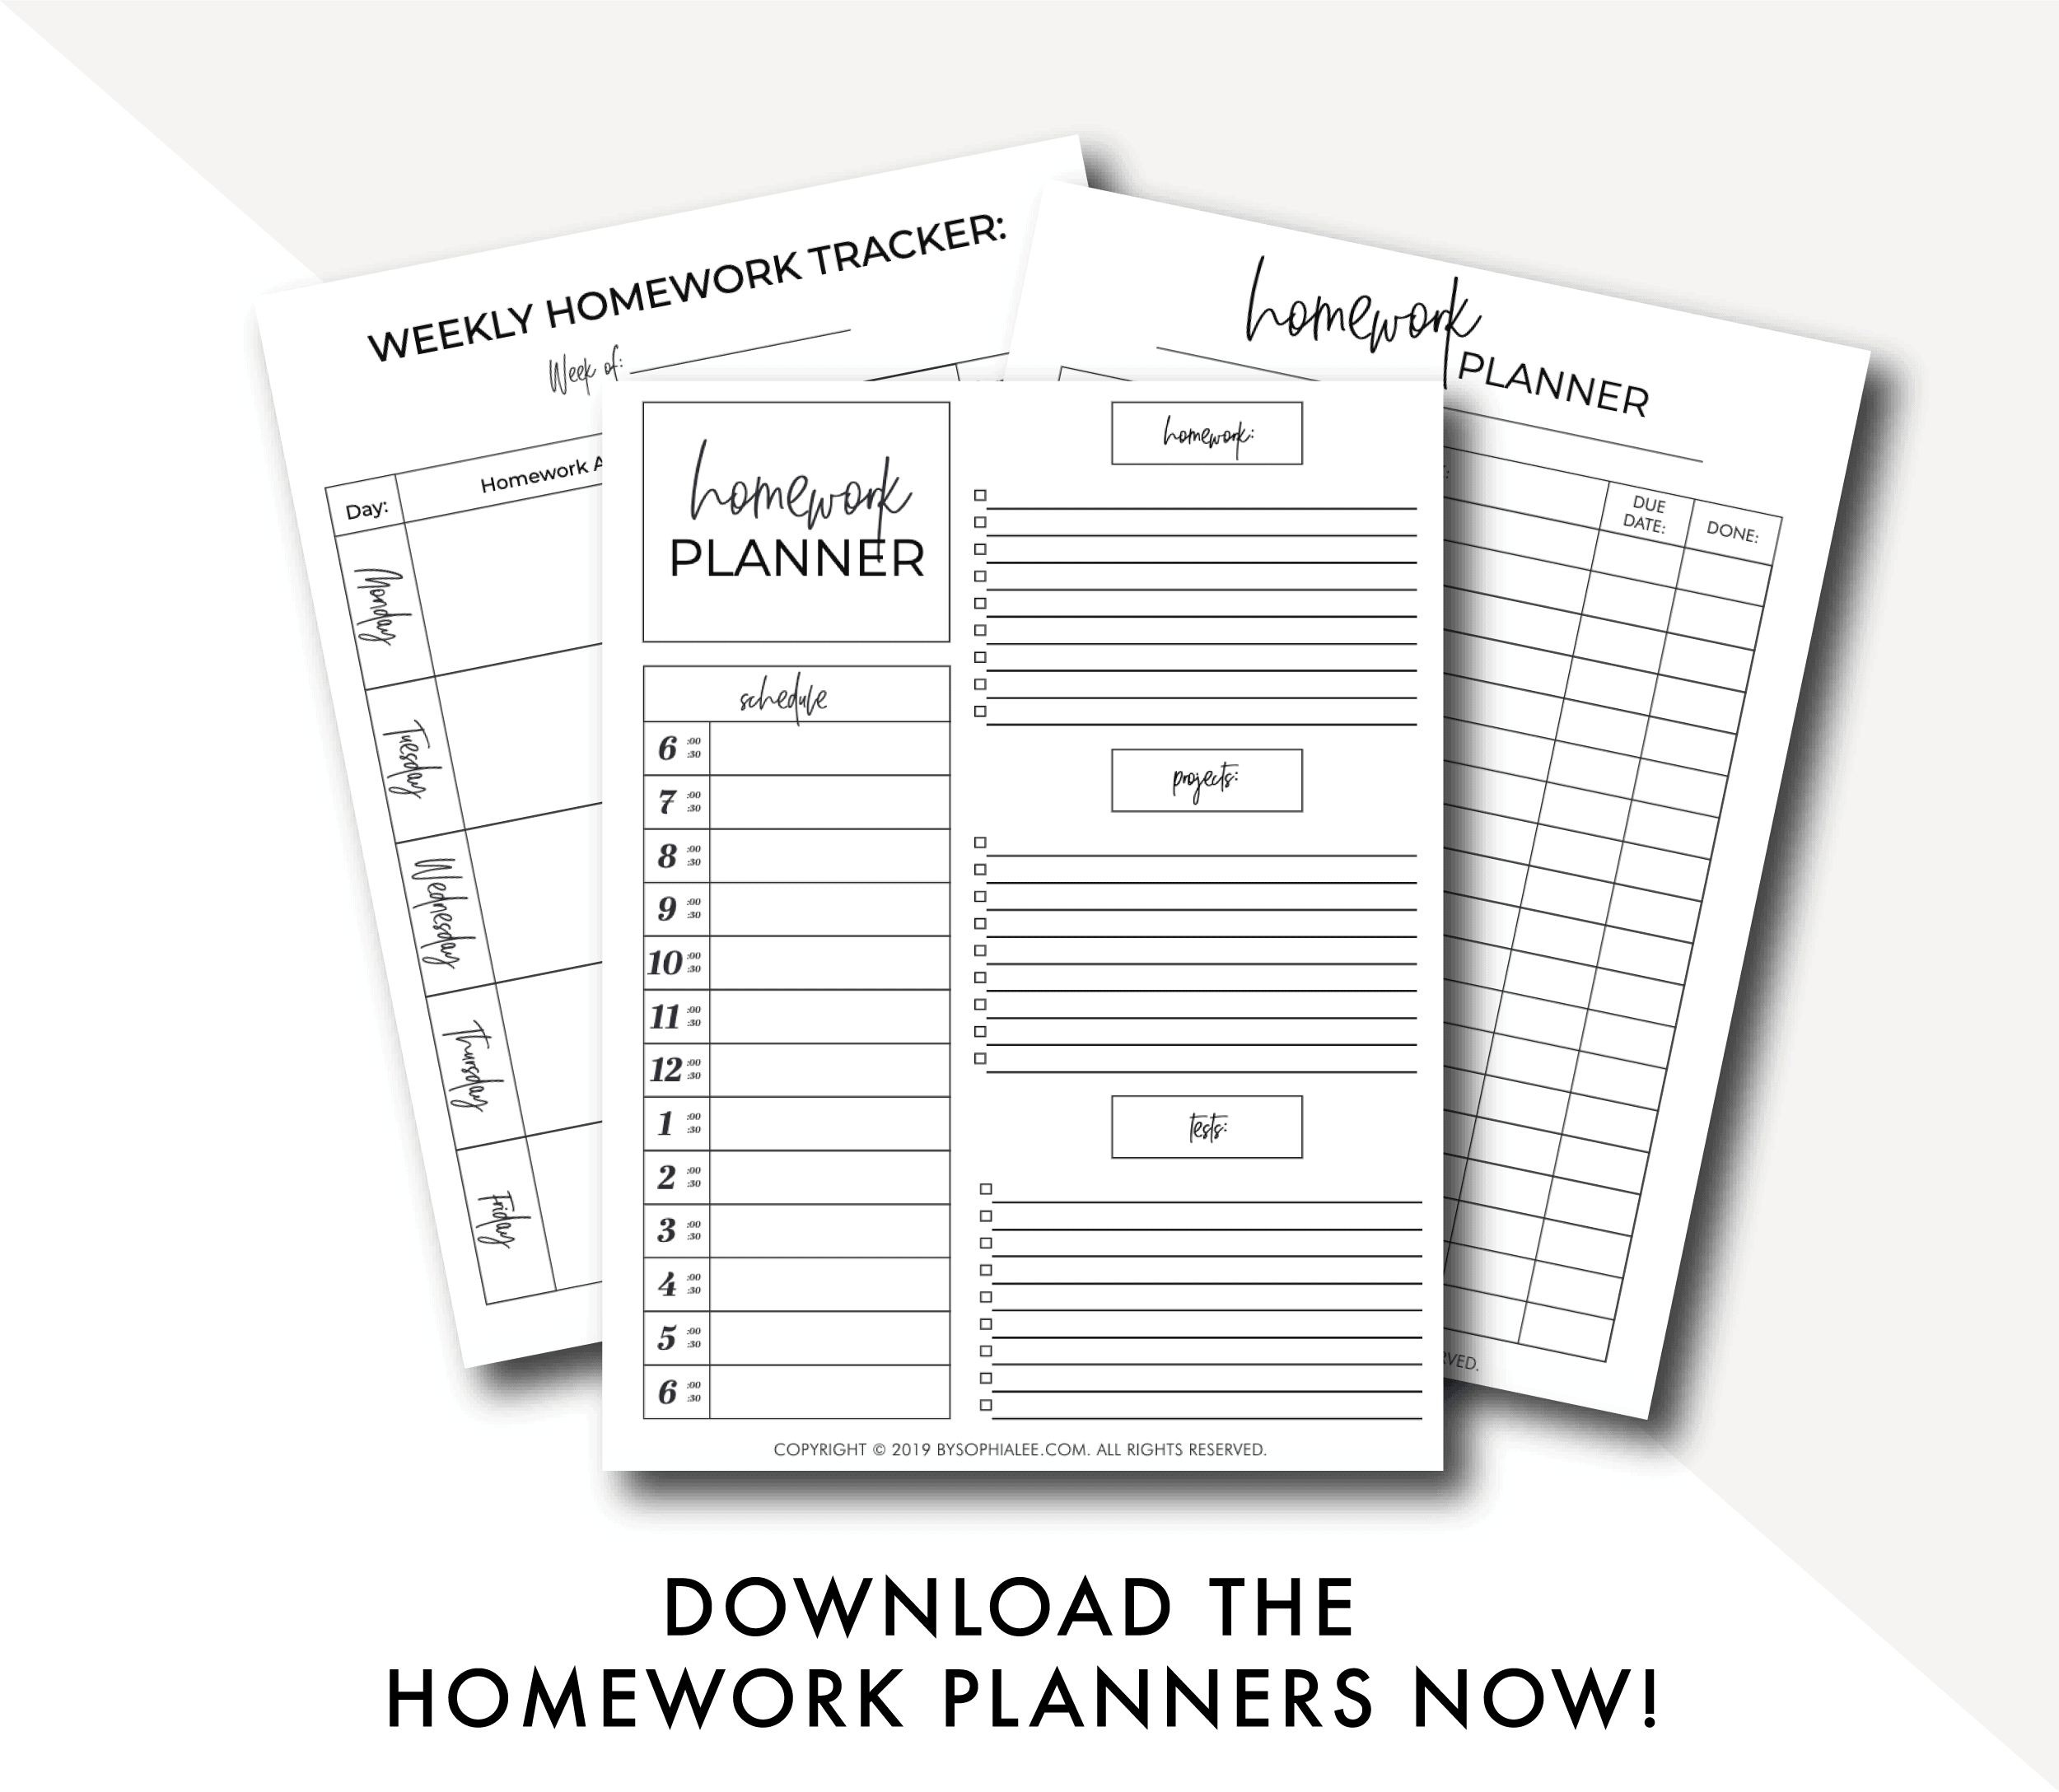 homework planners by sophia lee